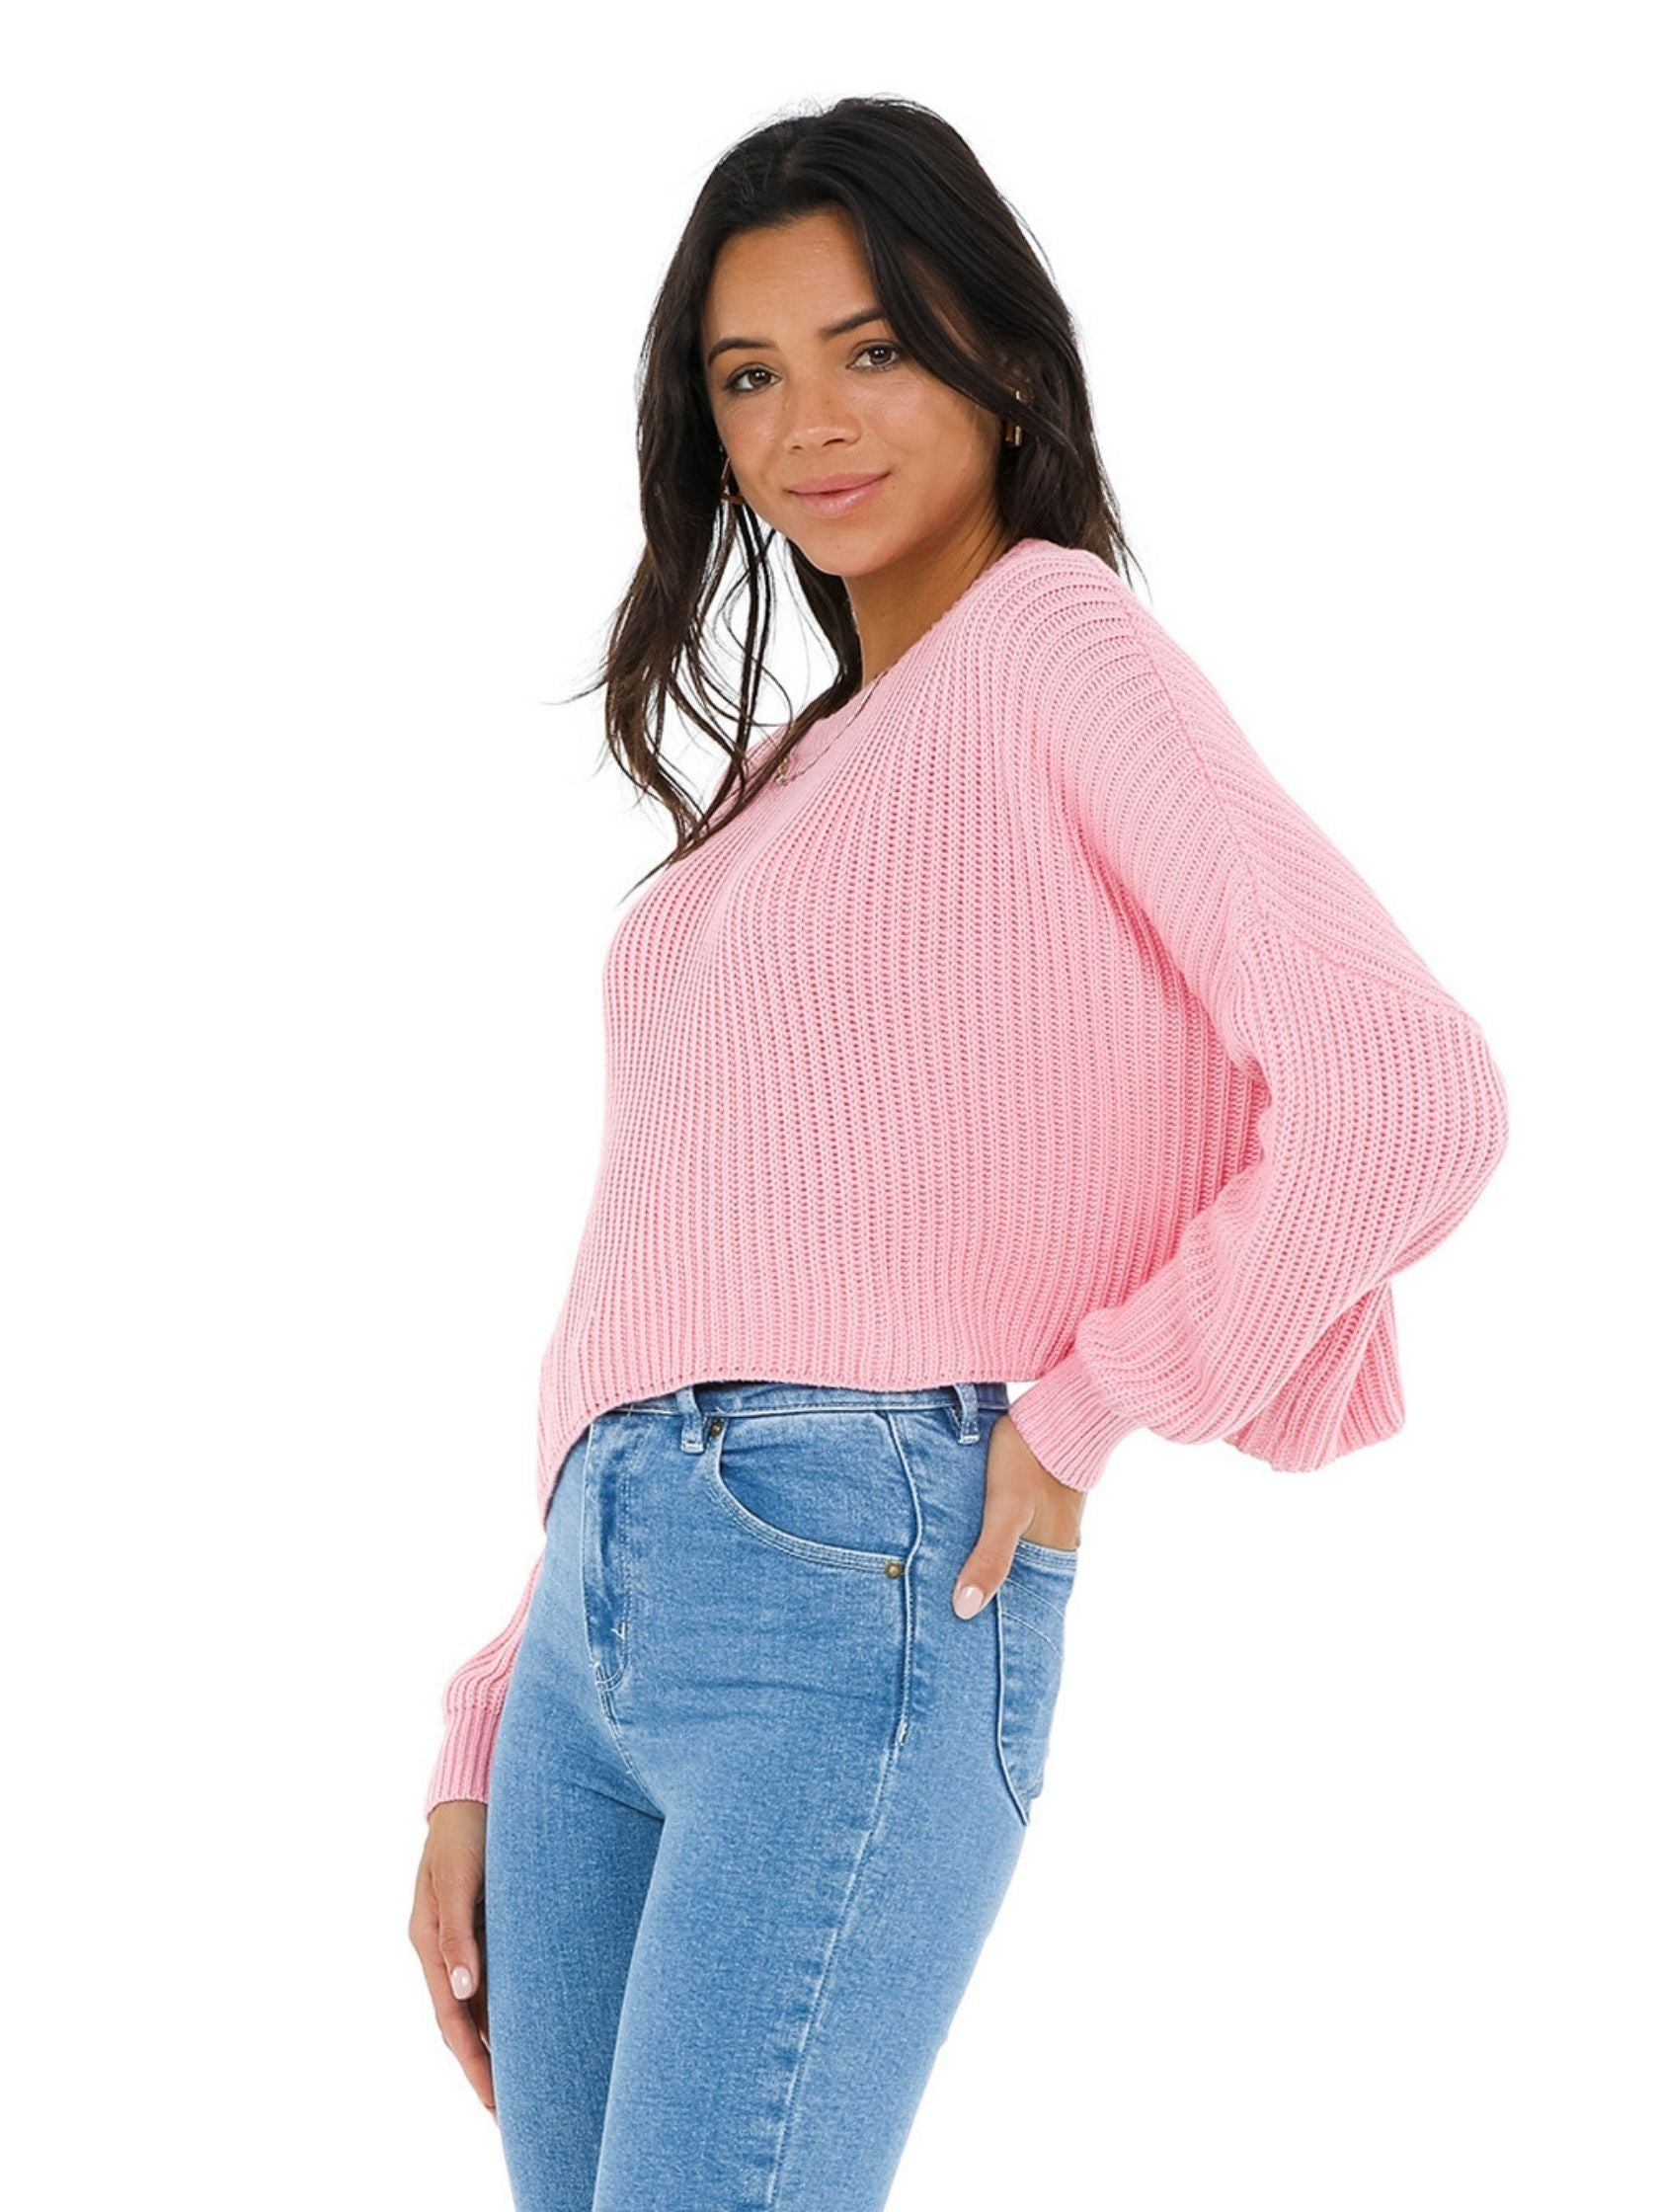 Women wearing a sweater rental from FashionPass called Cozy Up With Me Sweater